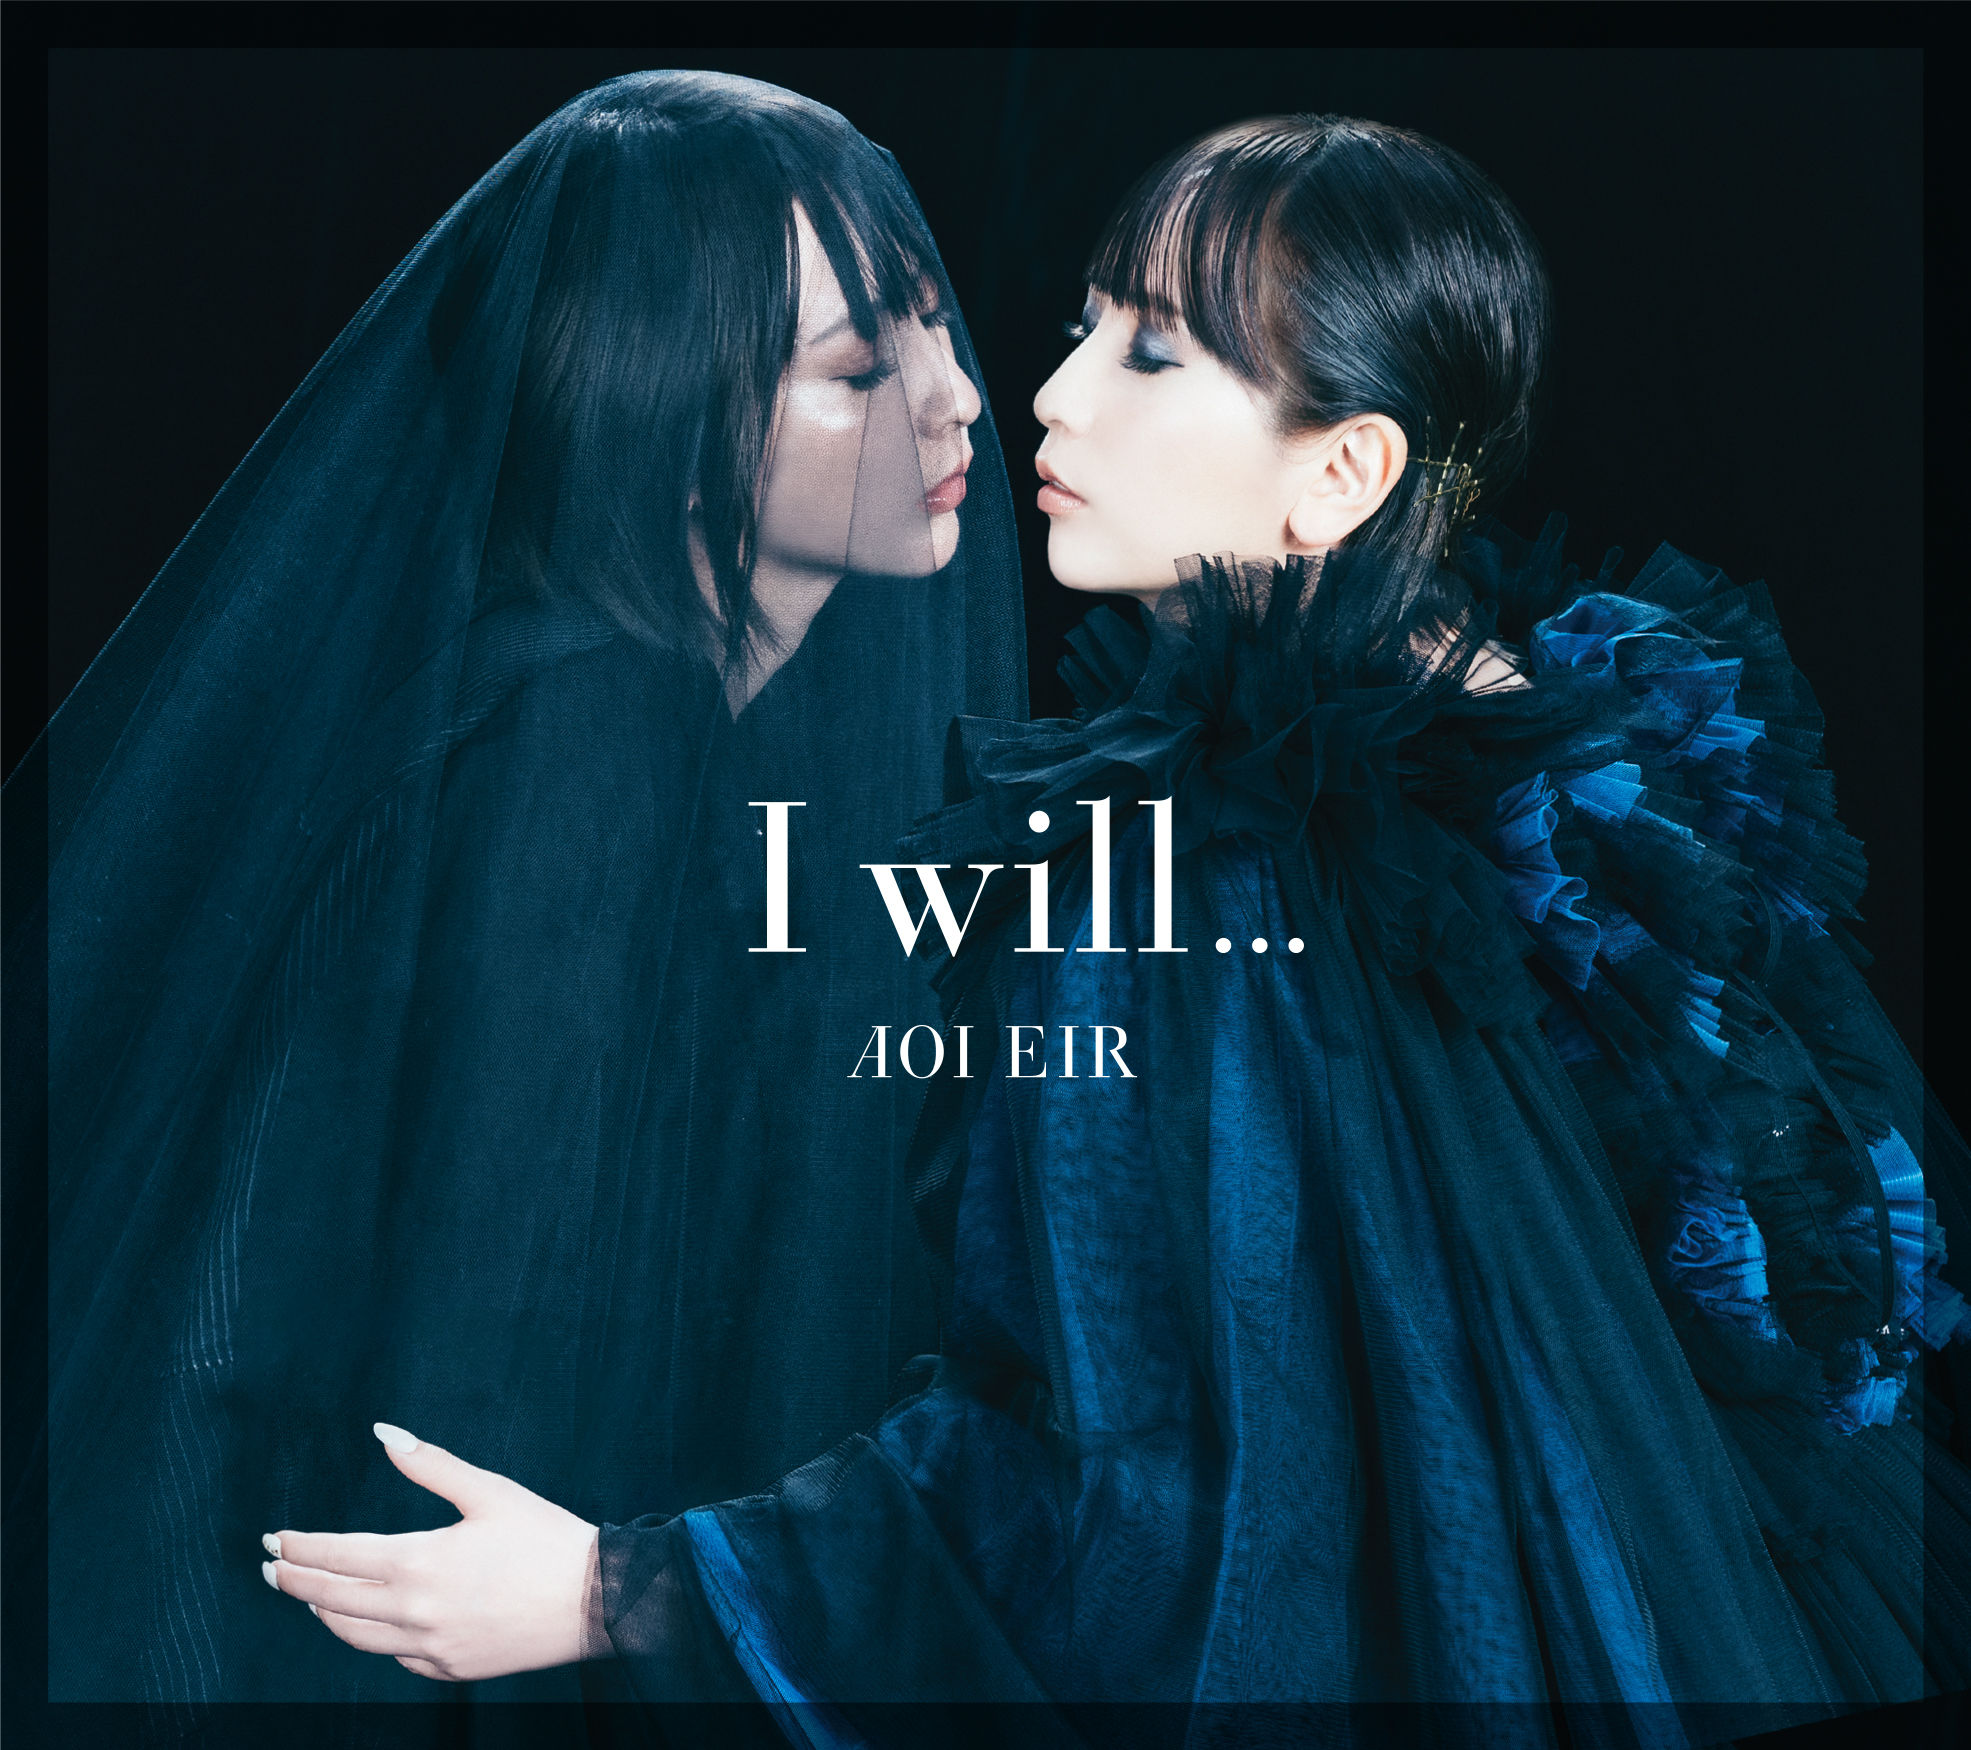 Image of Aoi Eir - I will...